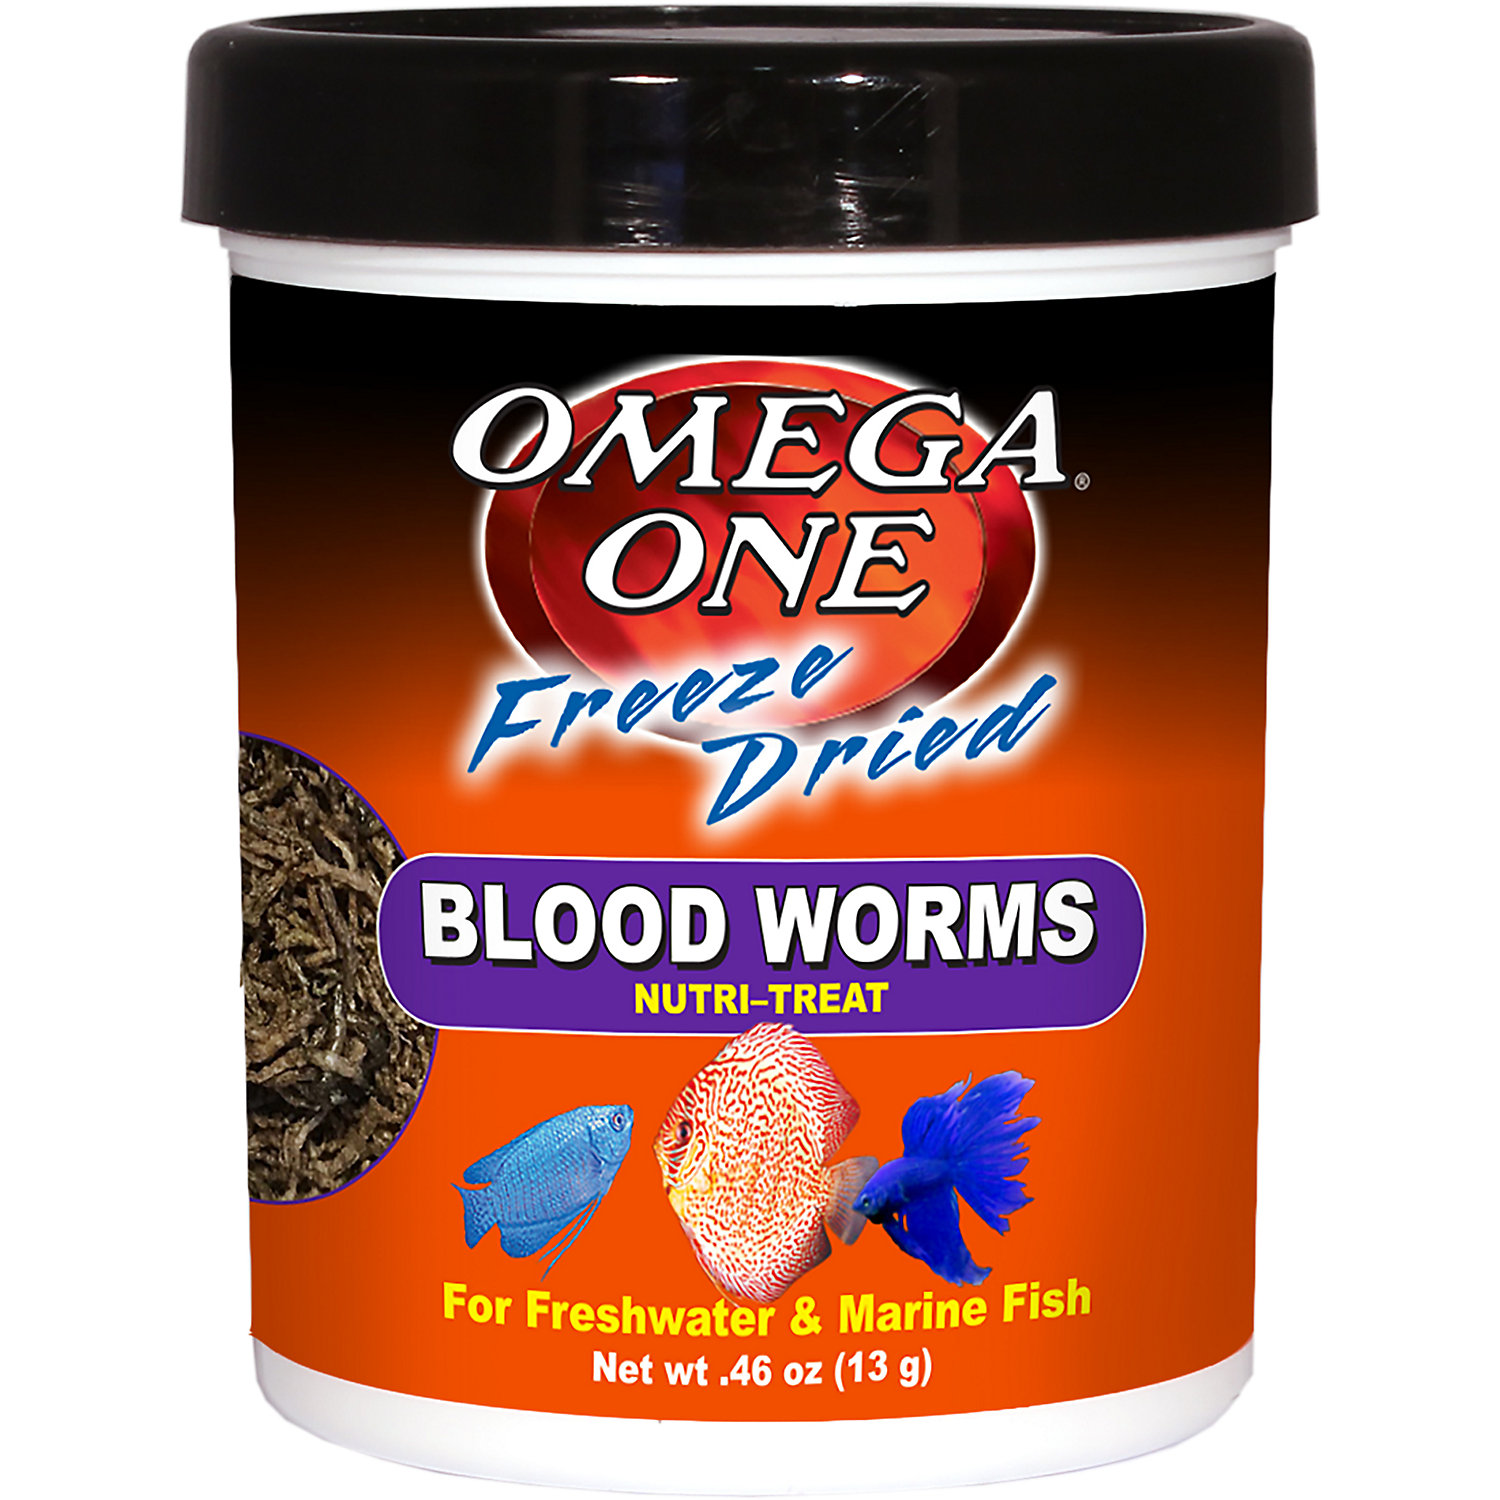 Omega One Freeze Dried Blood Worms .46 Oz.